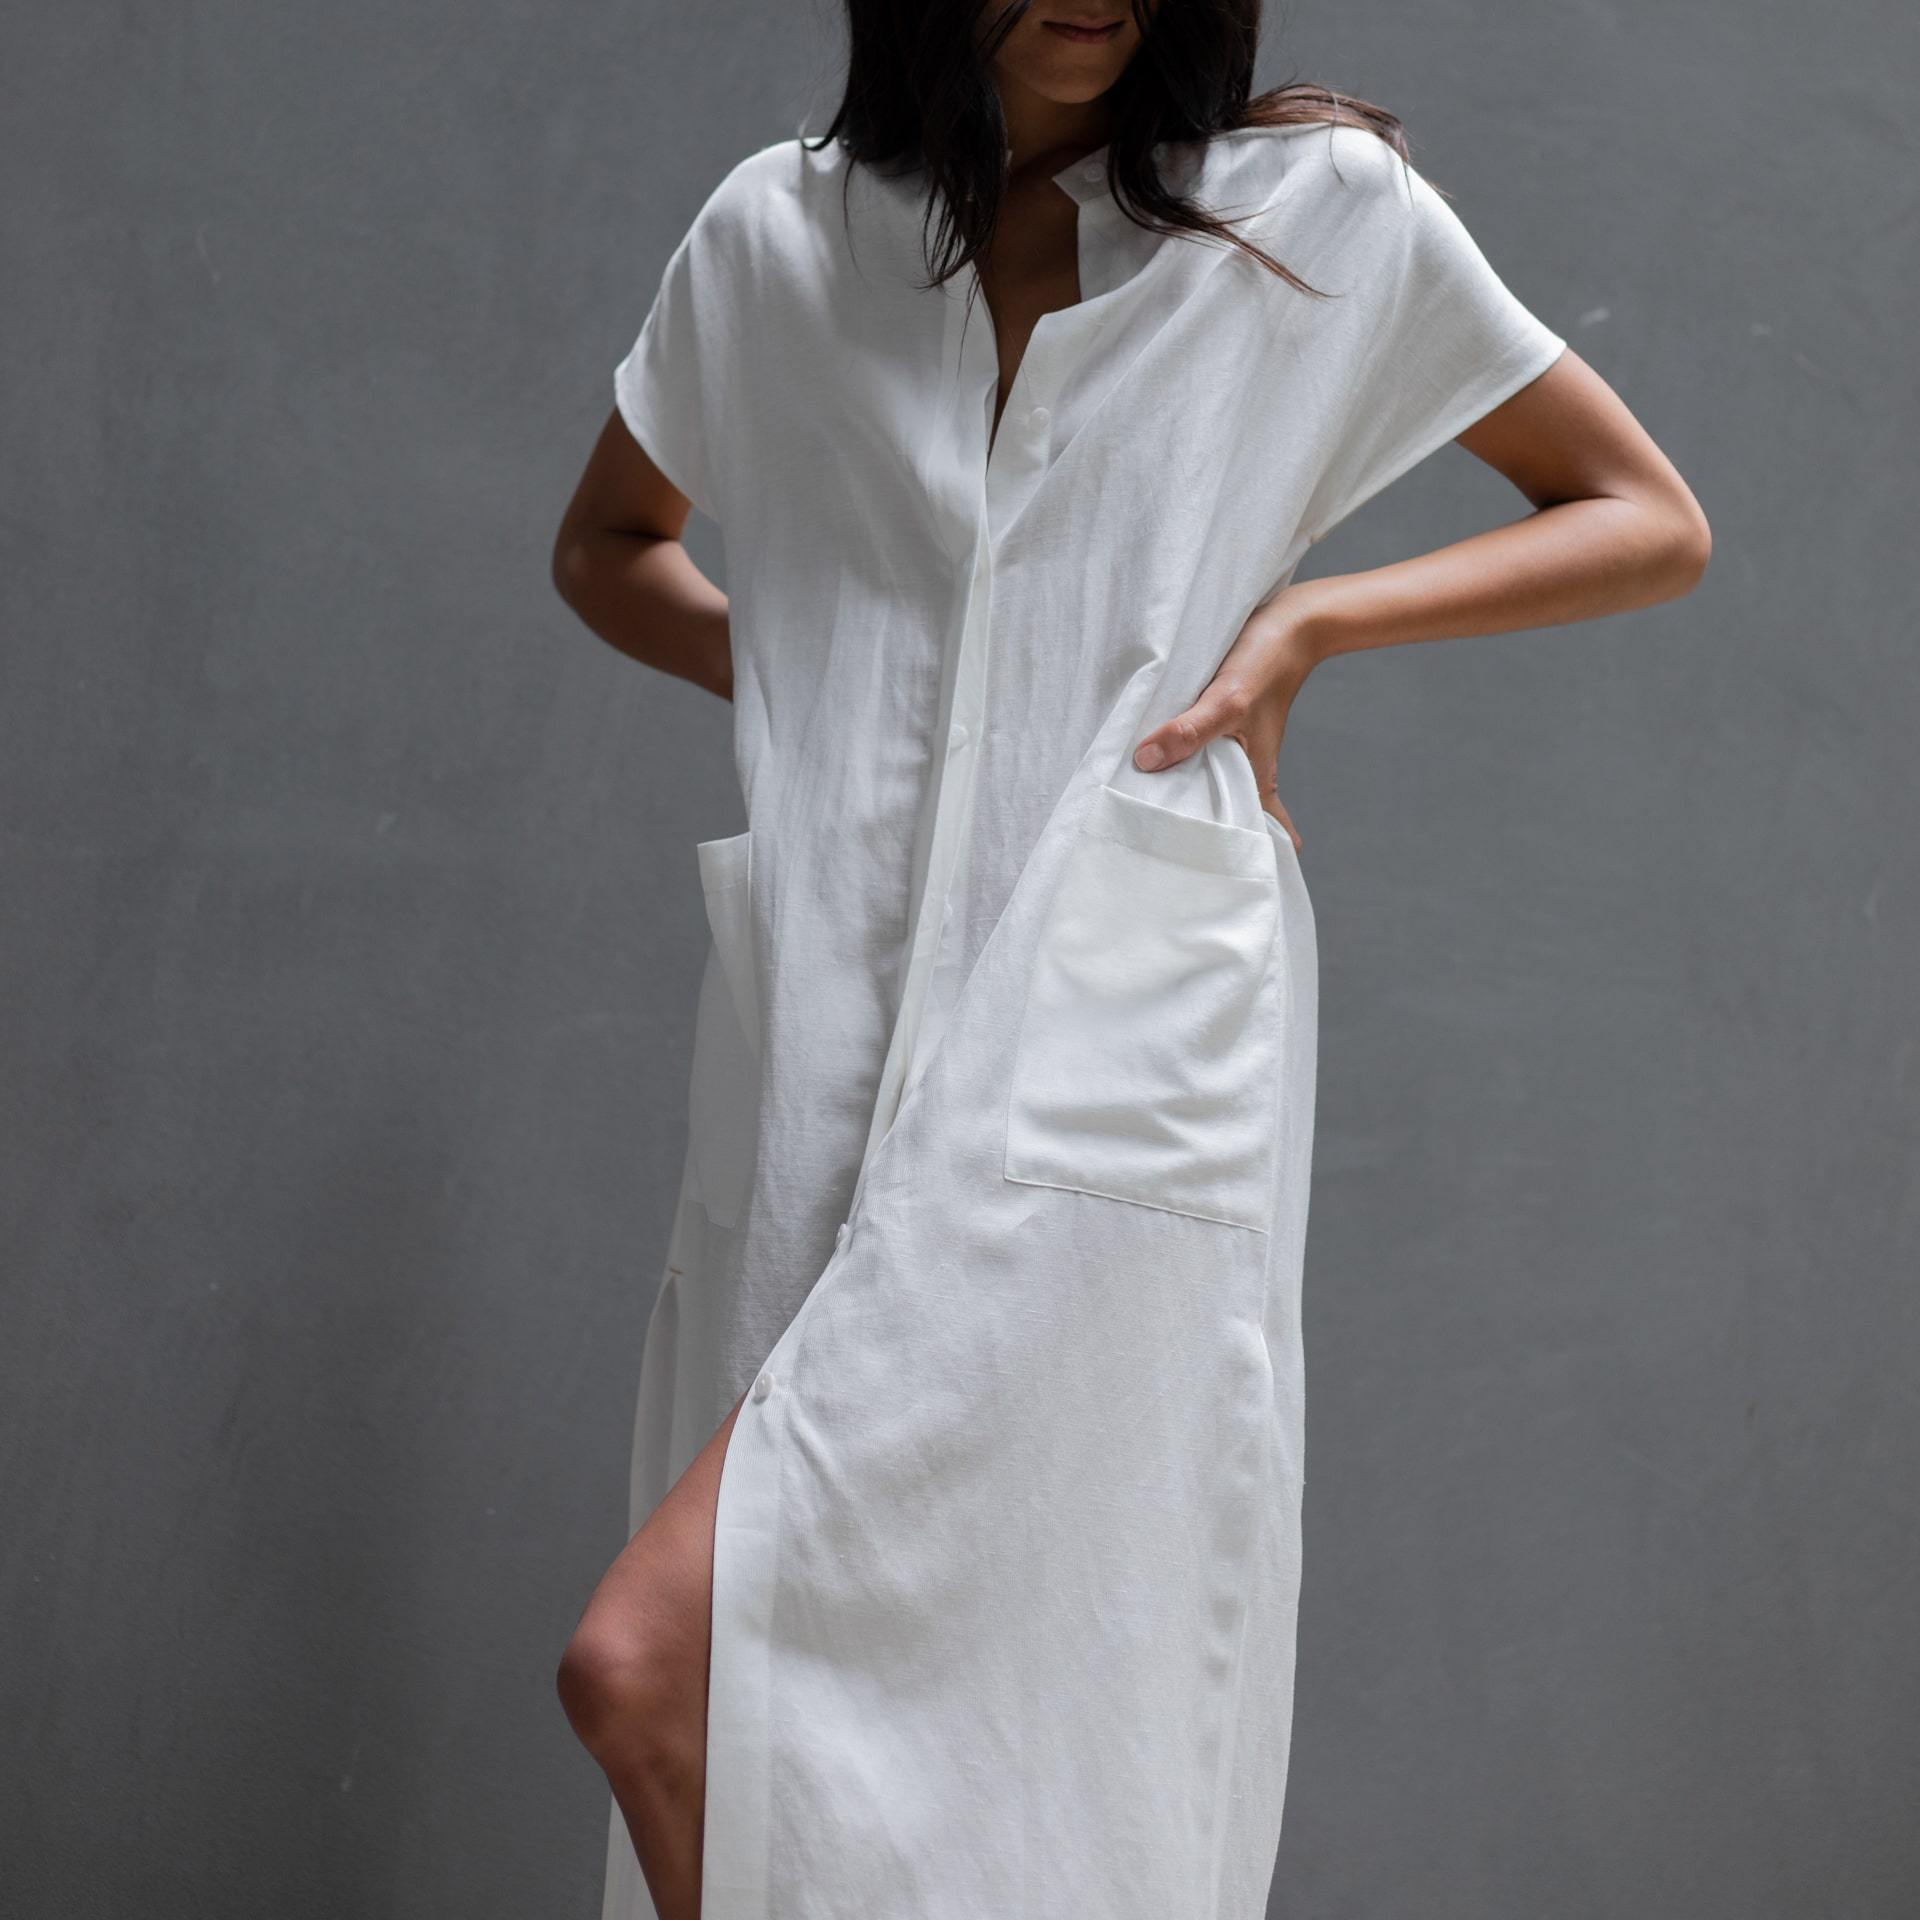 Lunya Sleepwear Resort Linen Silk Layering Dress - #White